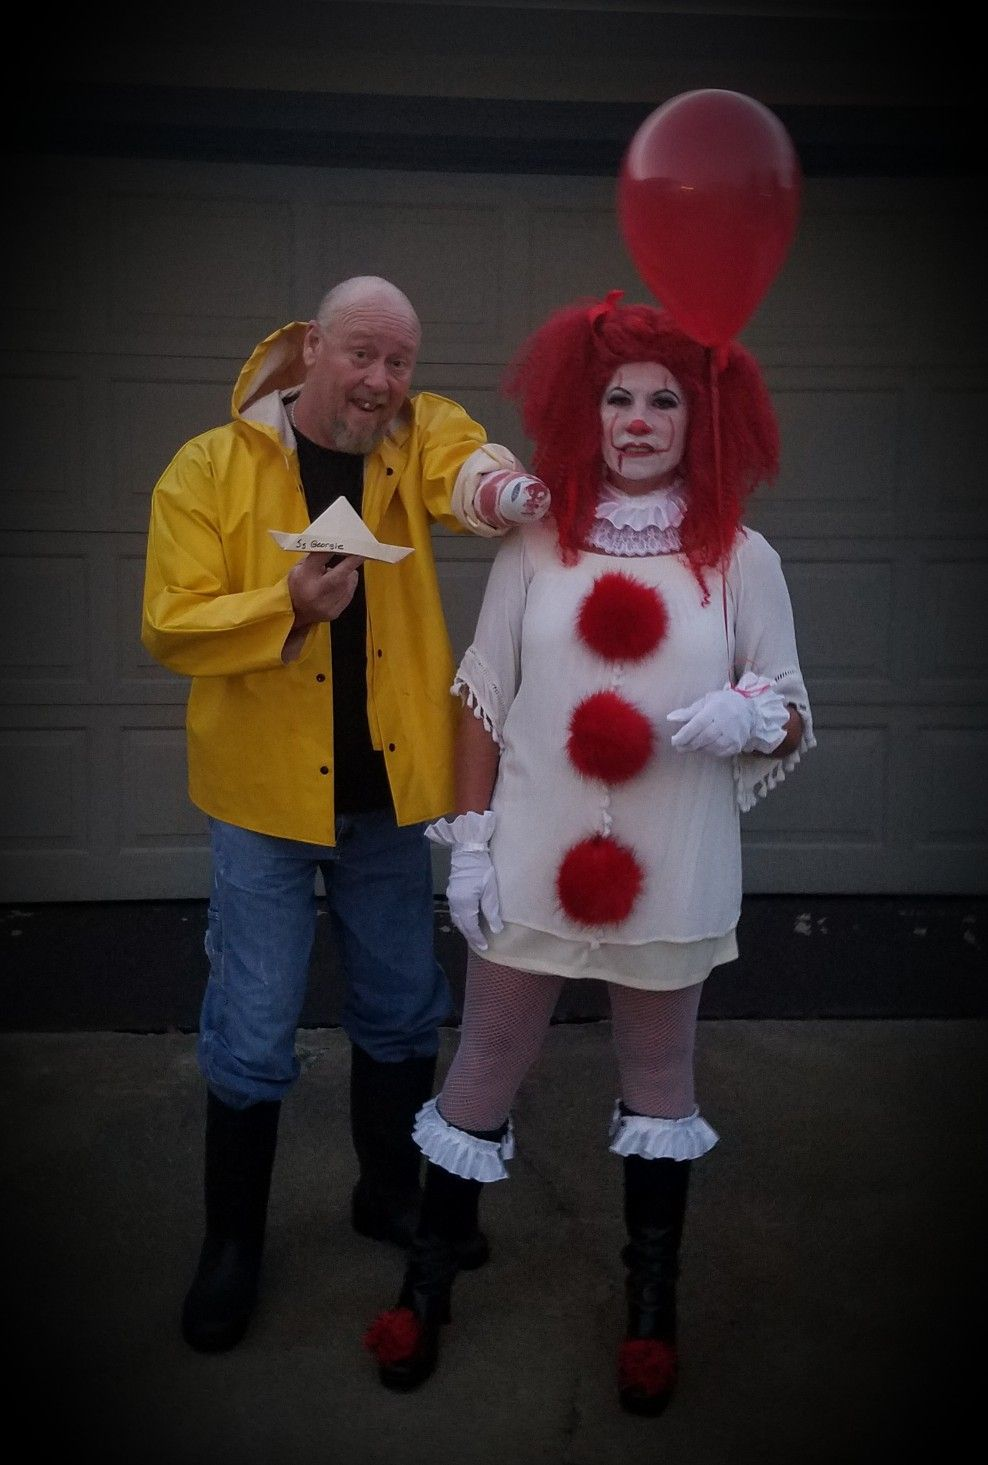 Pennywise and Halloween couples costume halloween